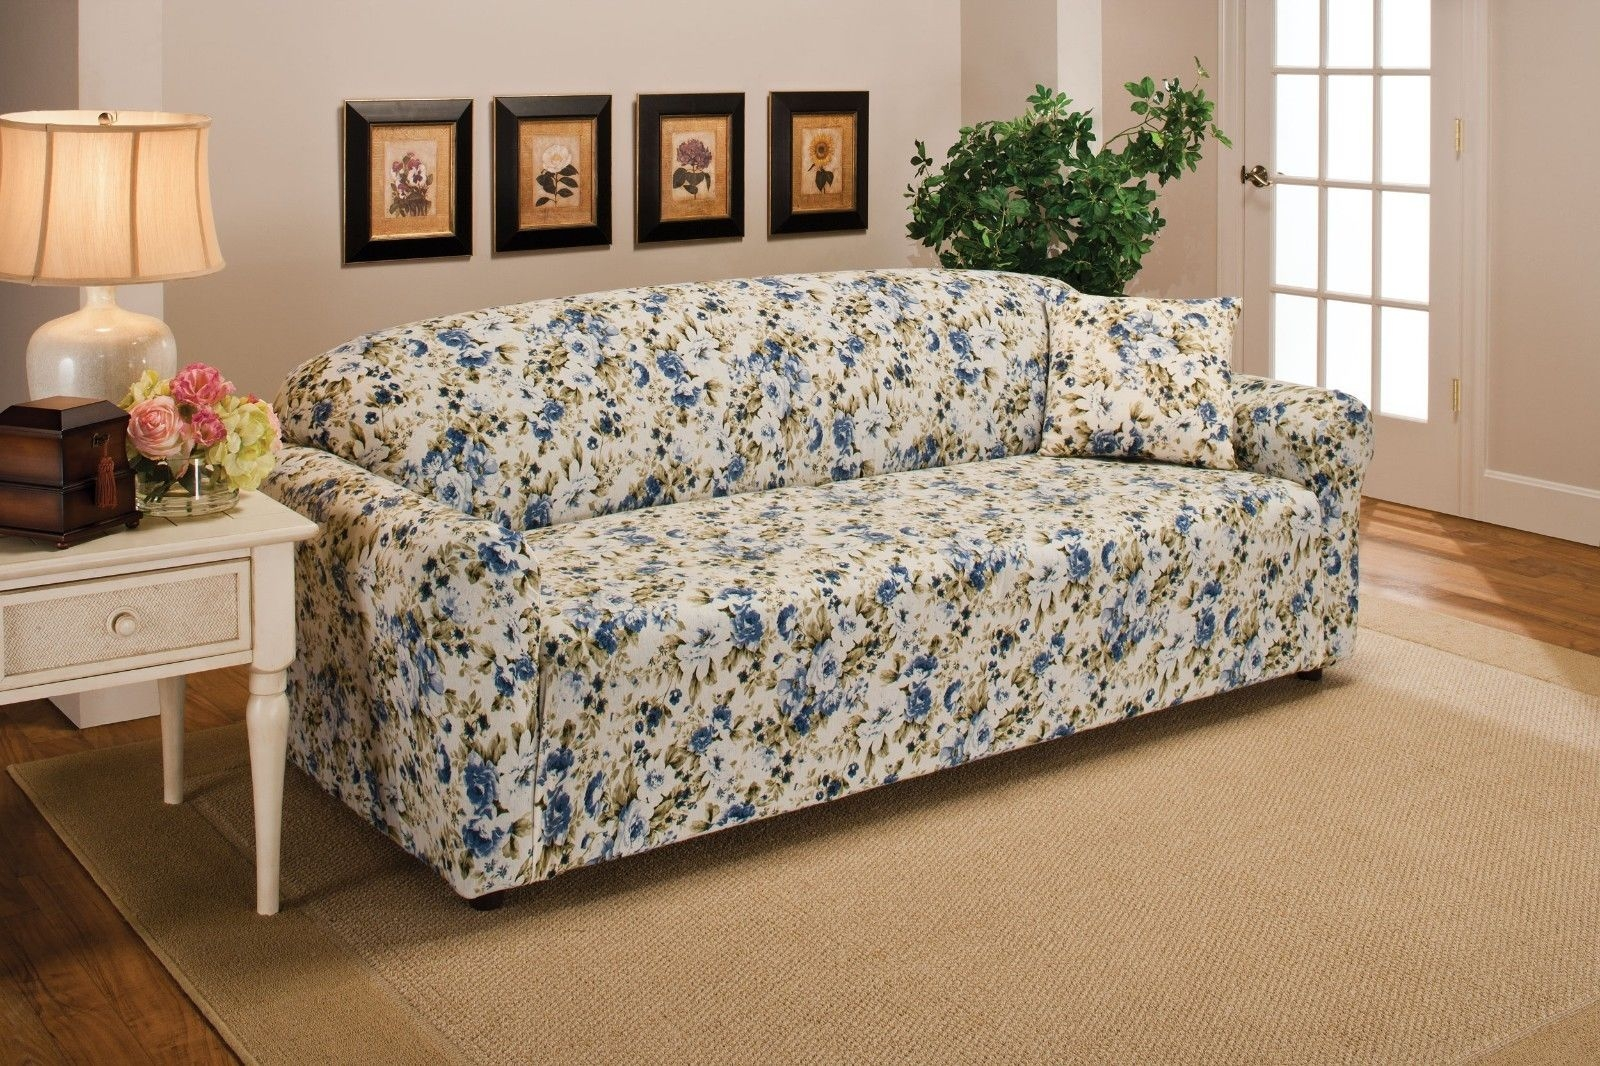 Flower Print Sofa 1970 Floral Sofa Flower Print Couch Suzy Q Inside Chintz Sofas (Image 10 of 15)